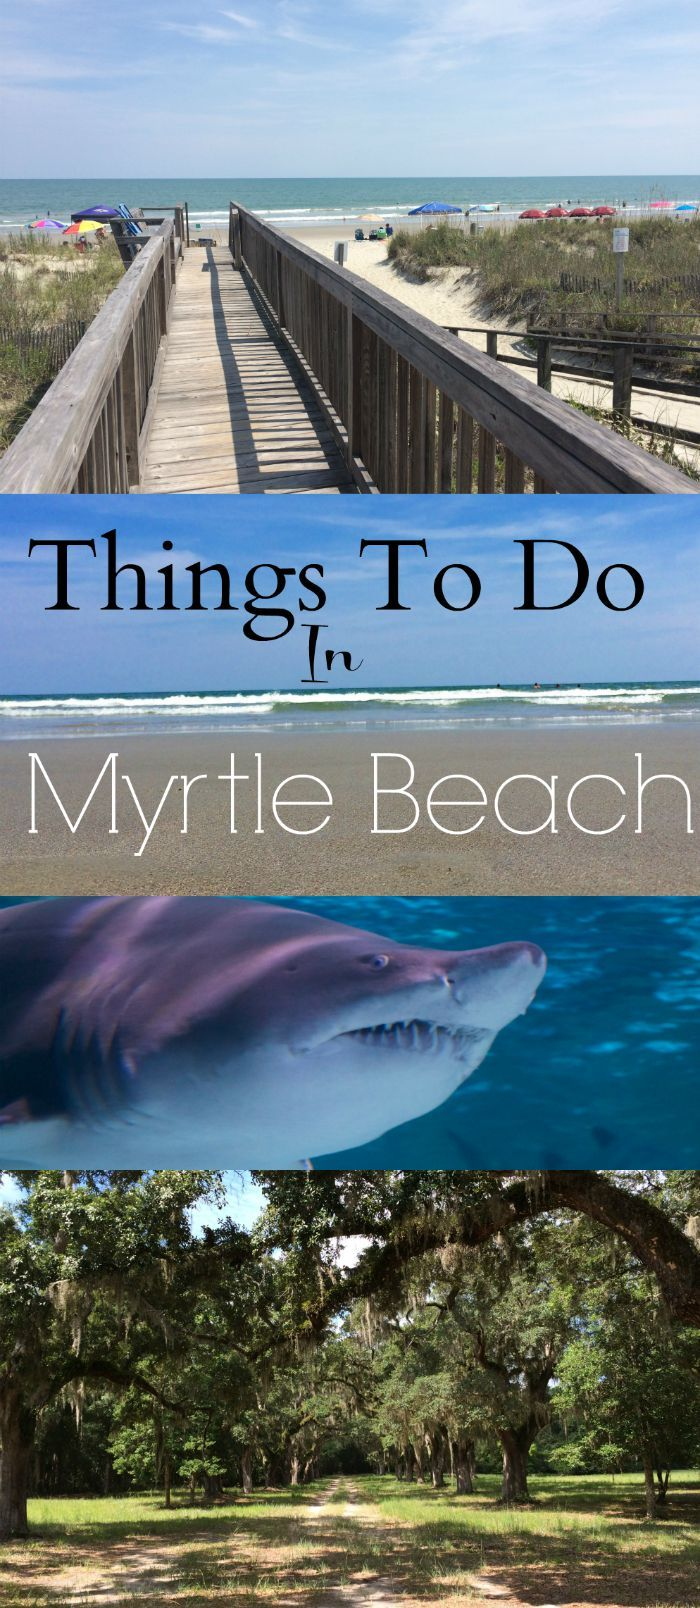 Things To Do In Myrtle Beach South Carolina Travel Ideas Pinterest And Vacation